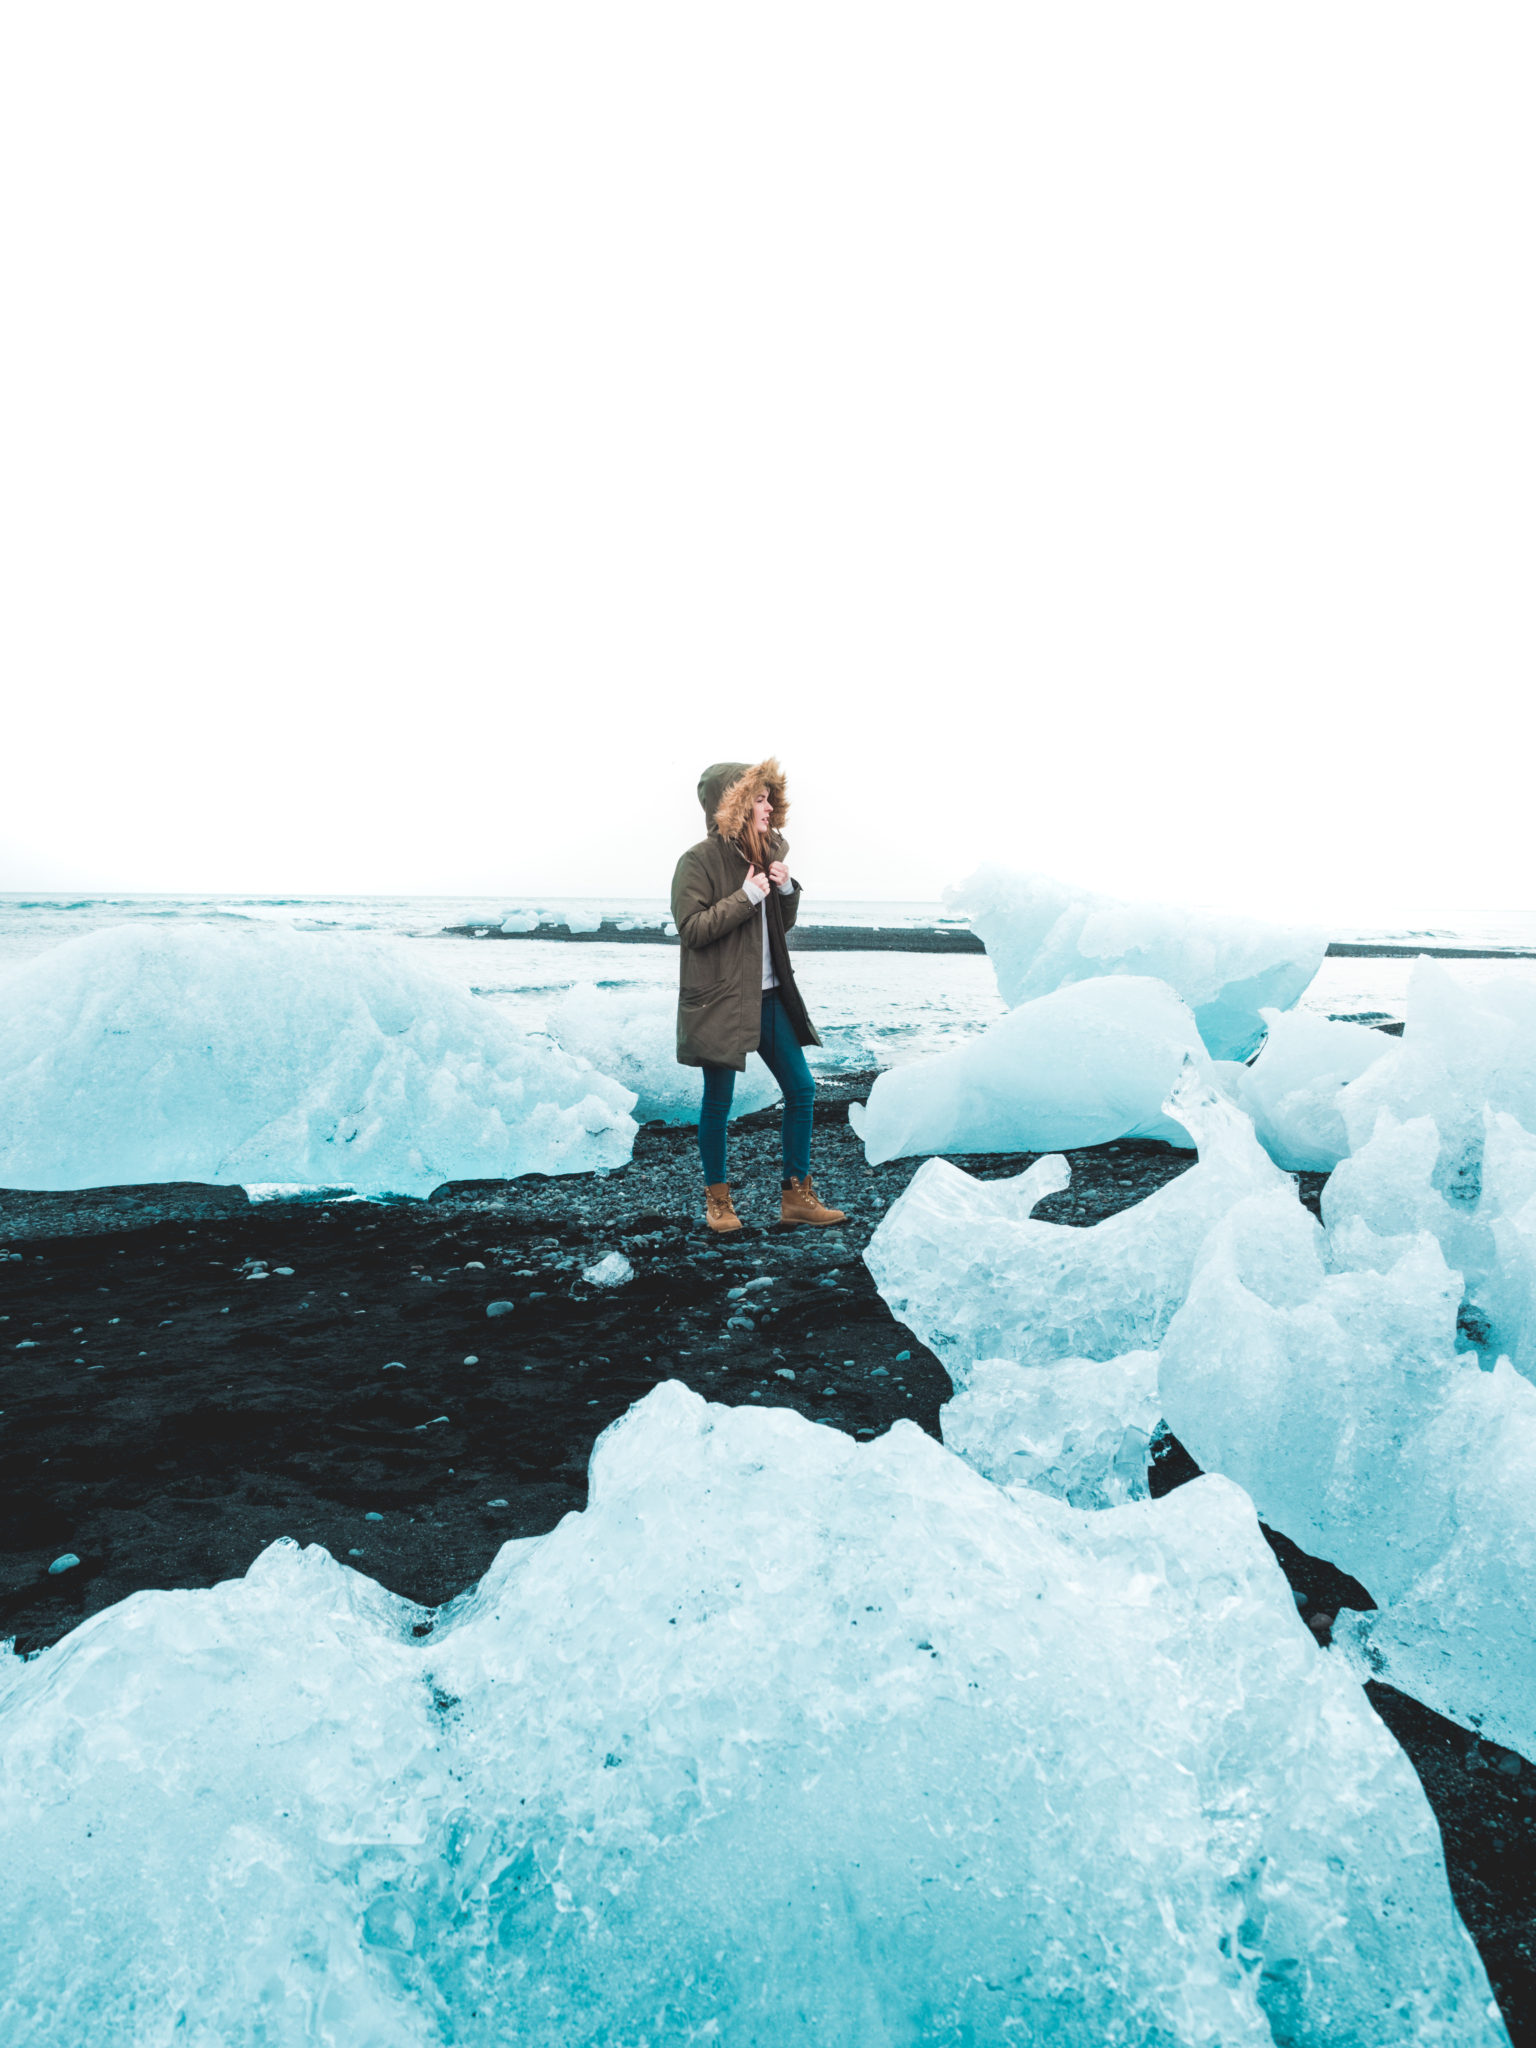 How to make the most of Four Days in Iceland | WORLD OF WANDERLUST